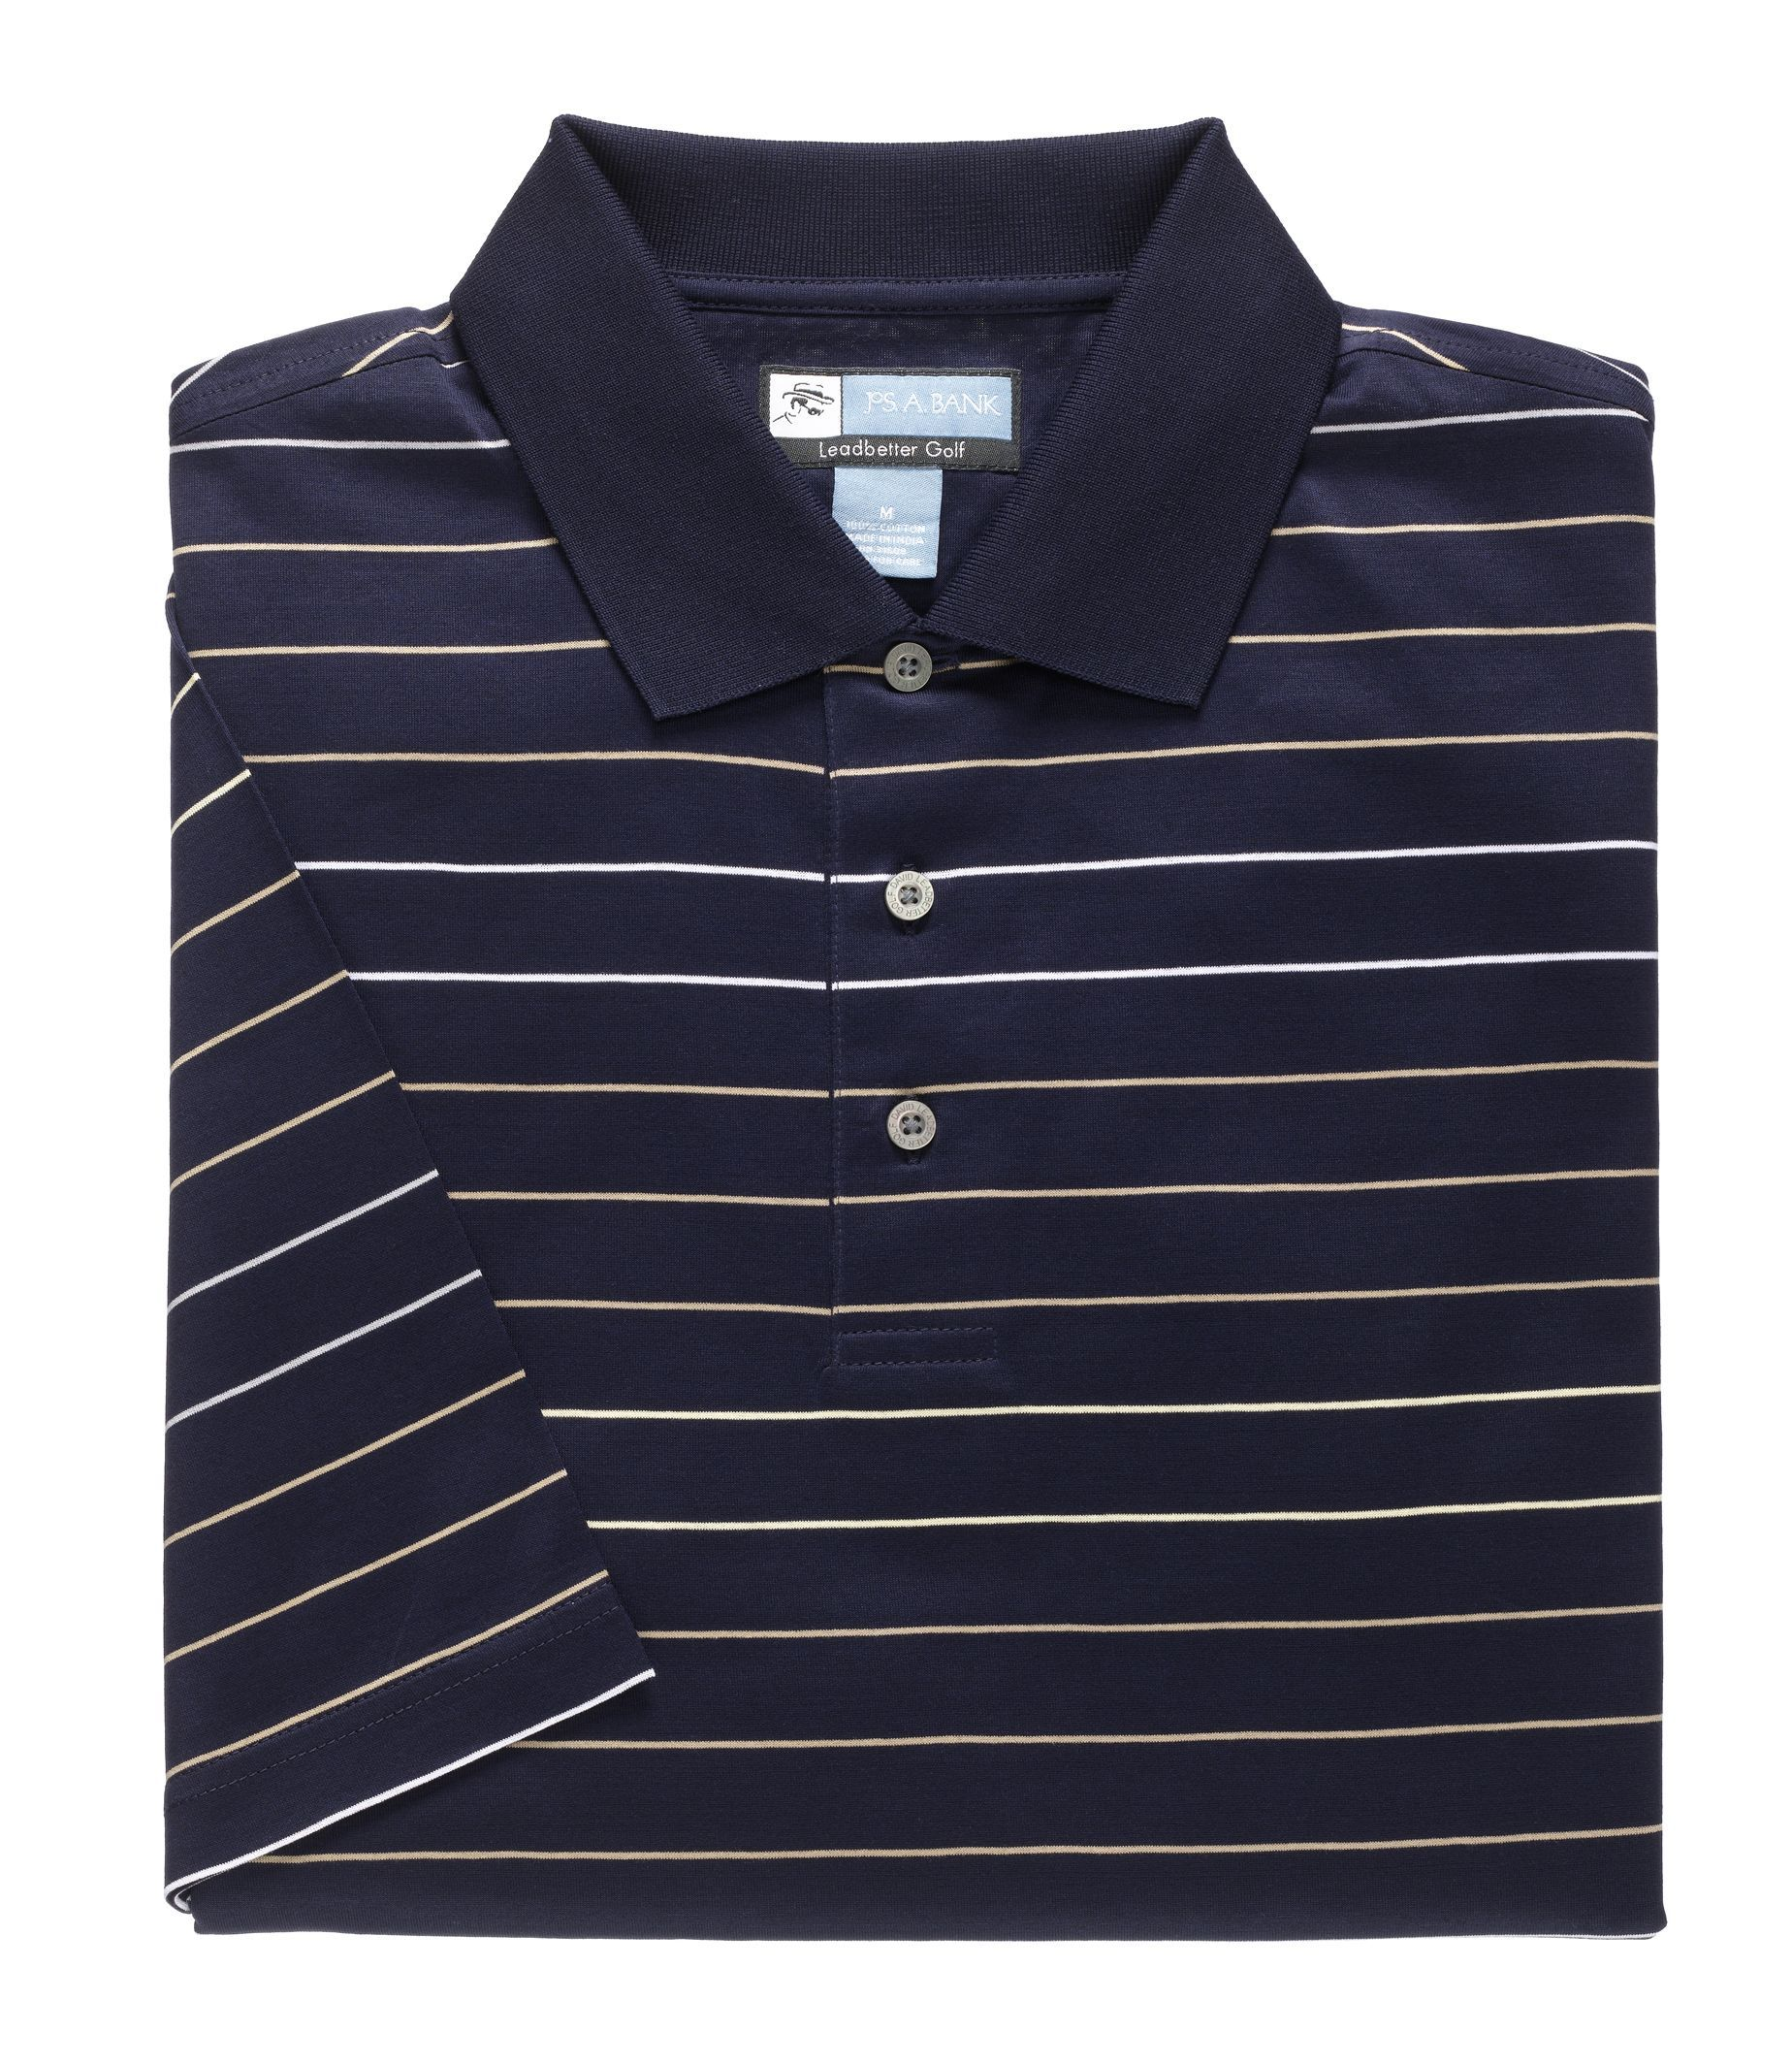 David Leadbetter Stays Cool Wide Multi Stripe Polo CLEARANCE